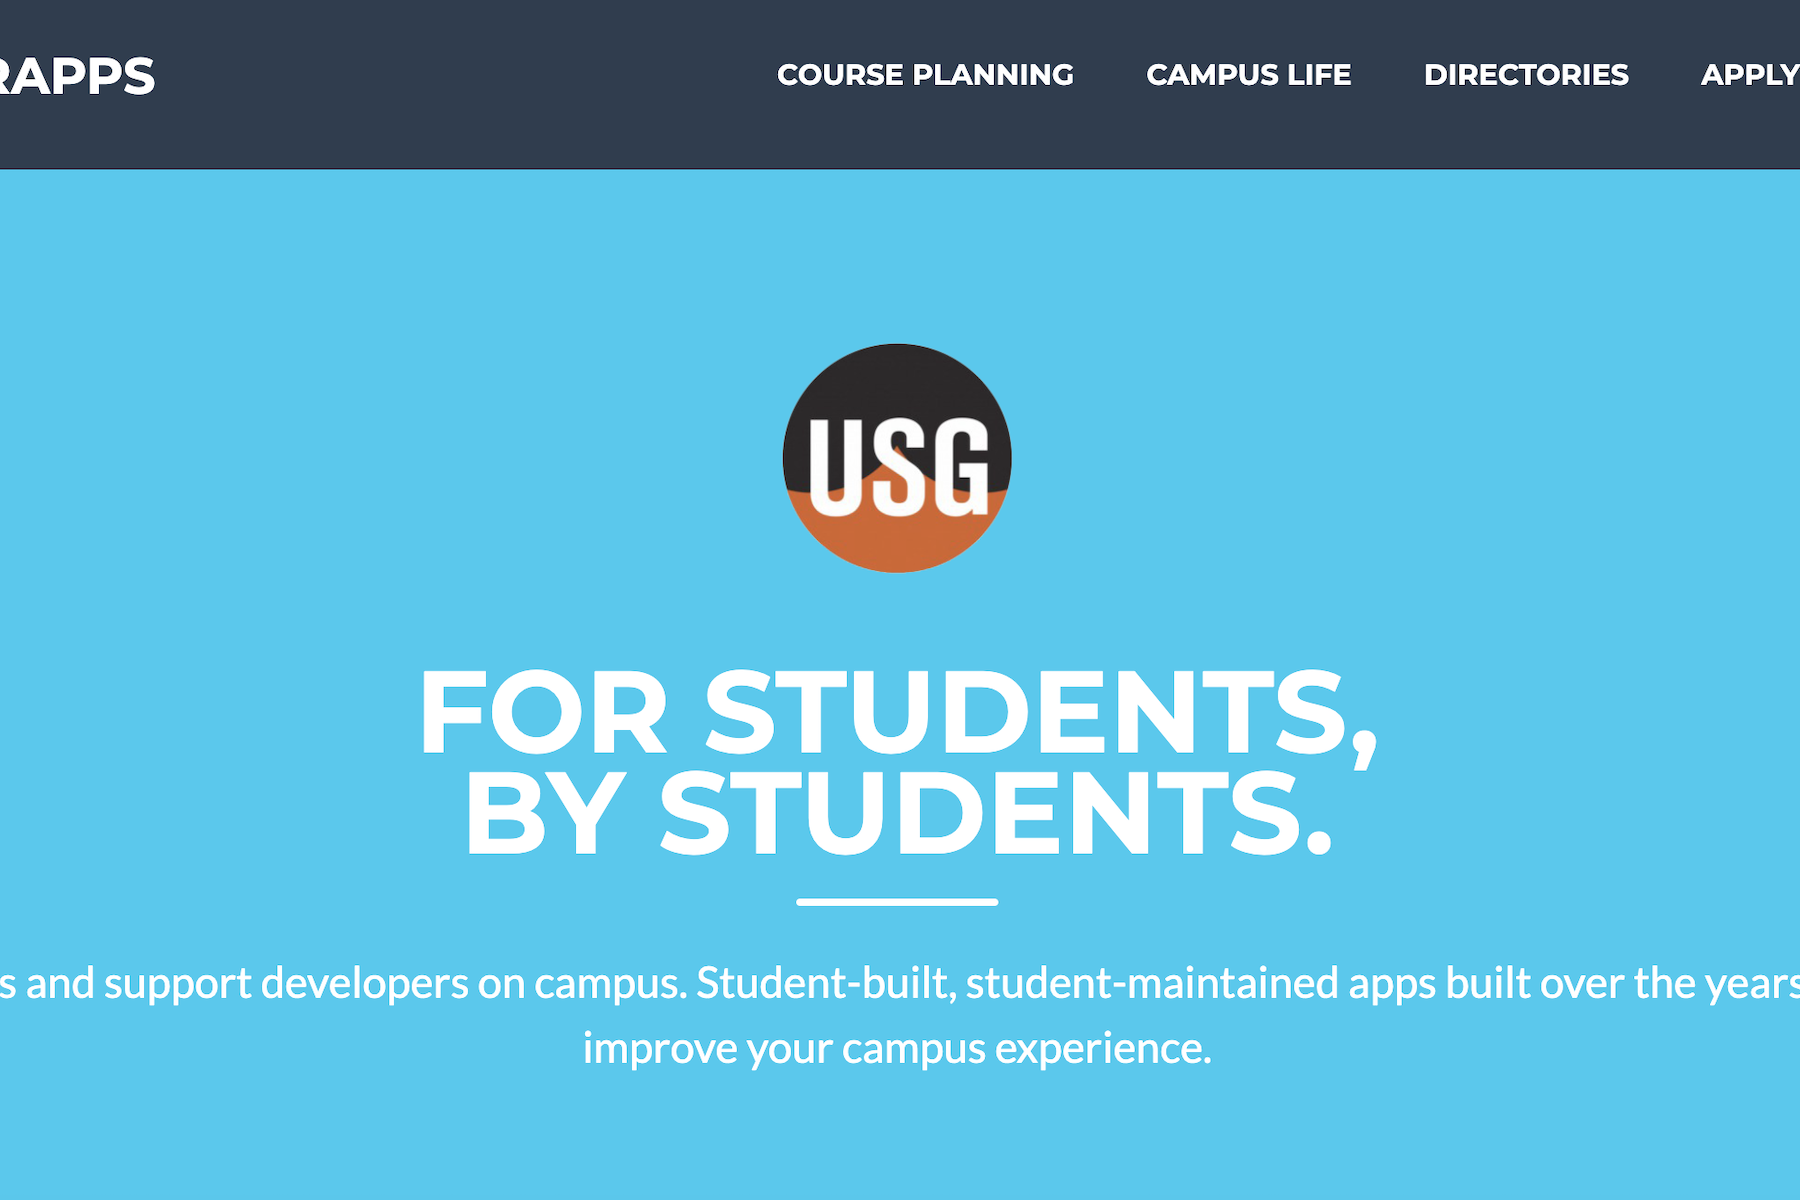 The TigerApps homepage. It says: For students, by students. We build apps and support developers on campus. Student-built, student-maintained apps built over the years, designed to improve your campus experience.